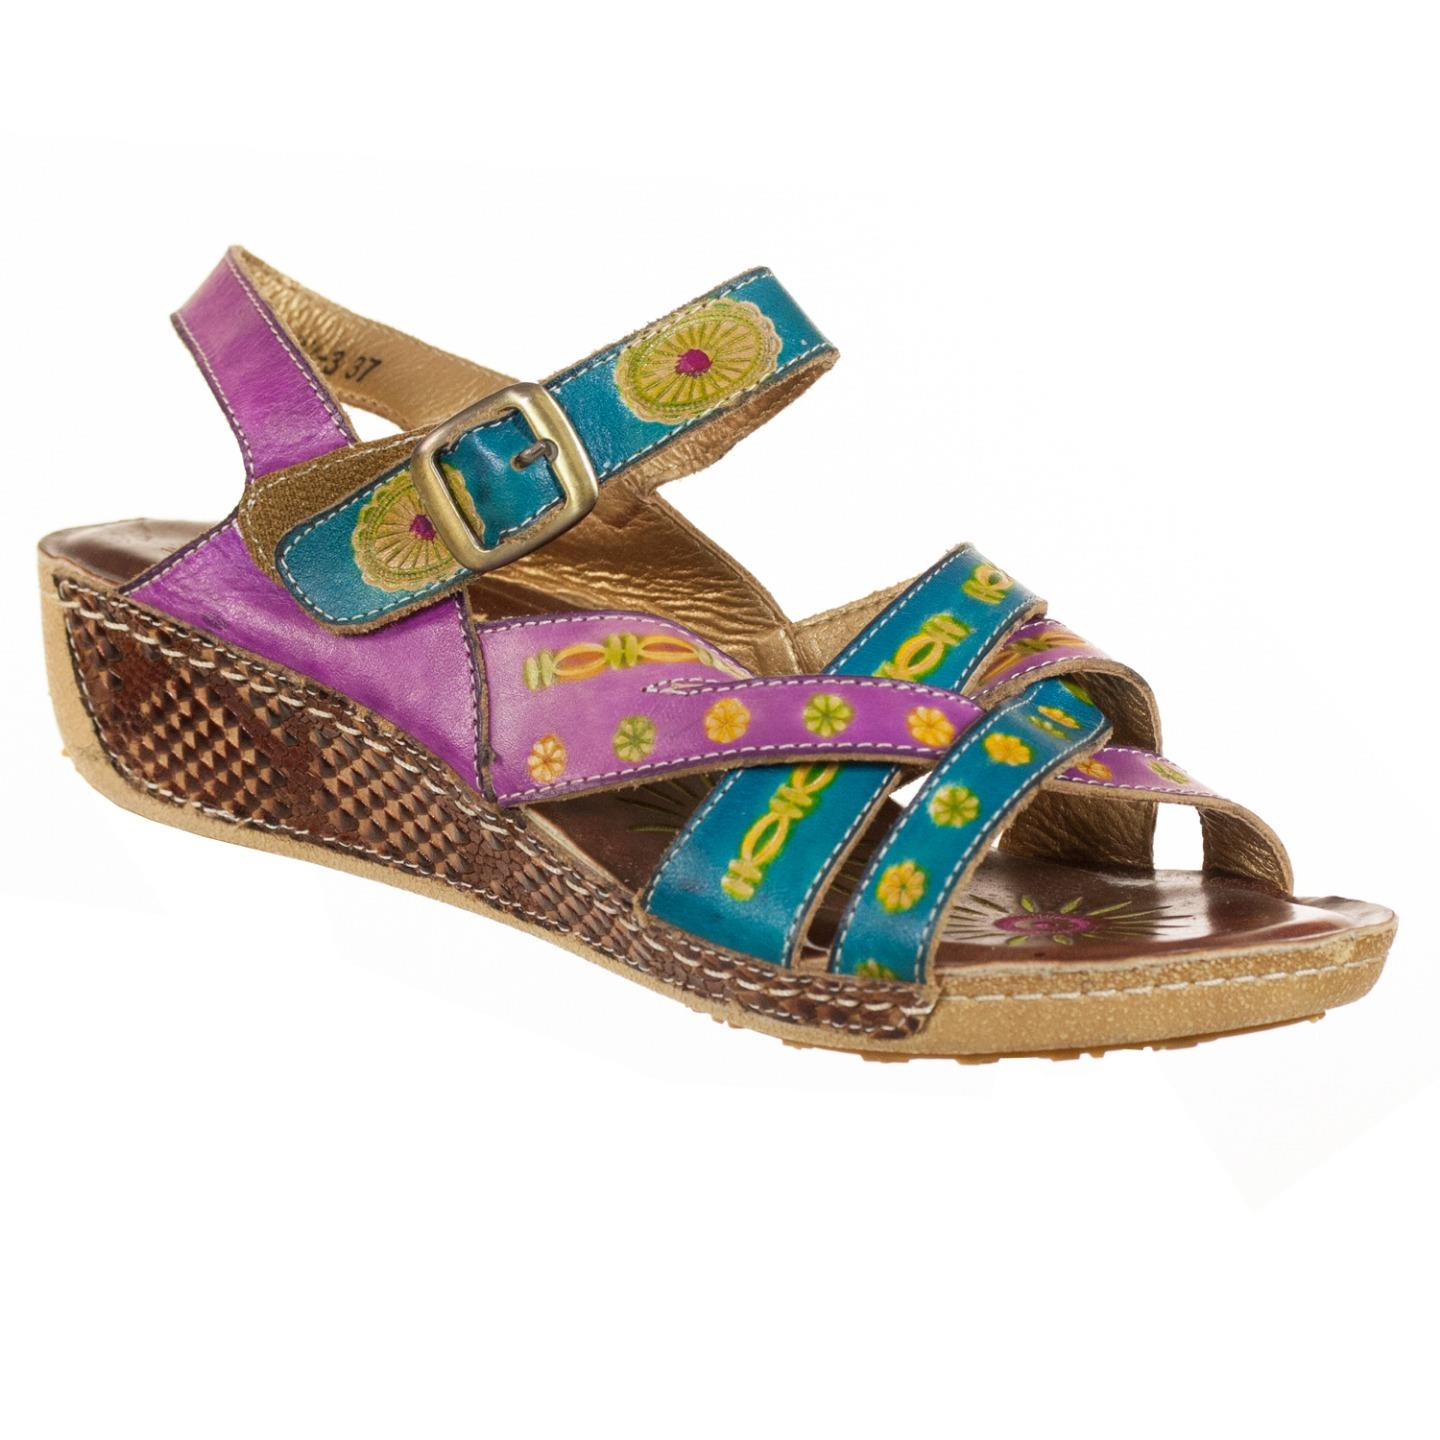 L'Artiste By Spring Step Livingstone Women's Sandals Purple Multi EU 37 US 7 by Spring Step